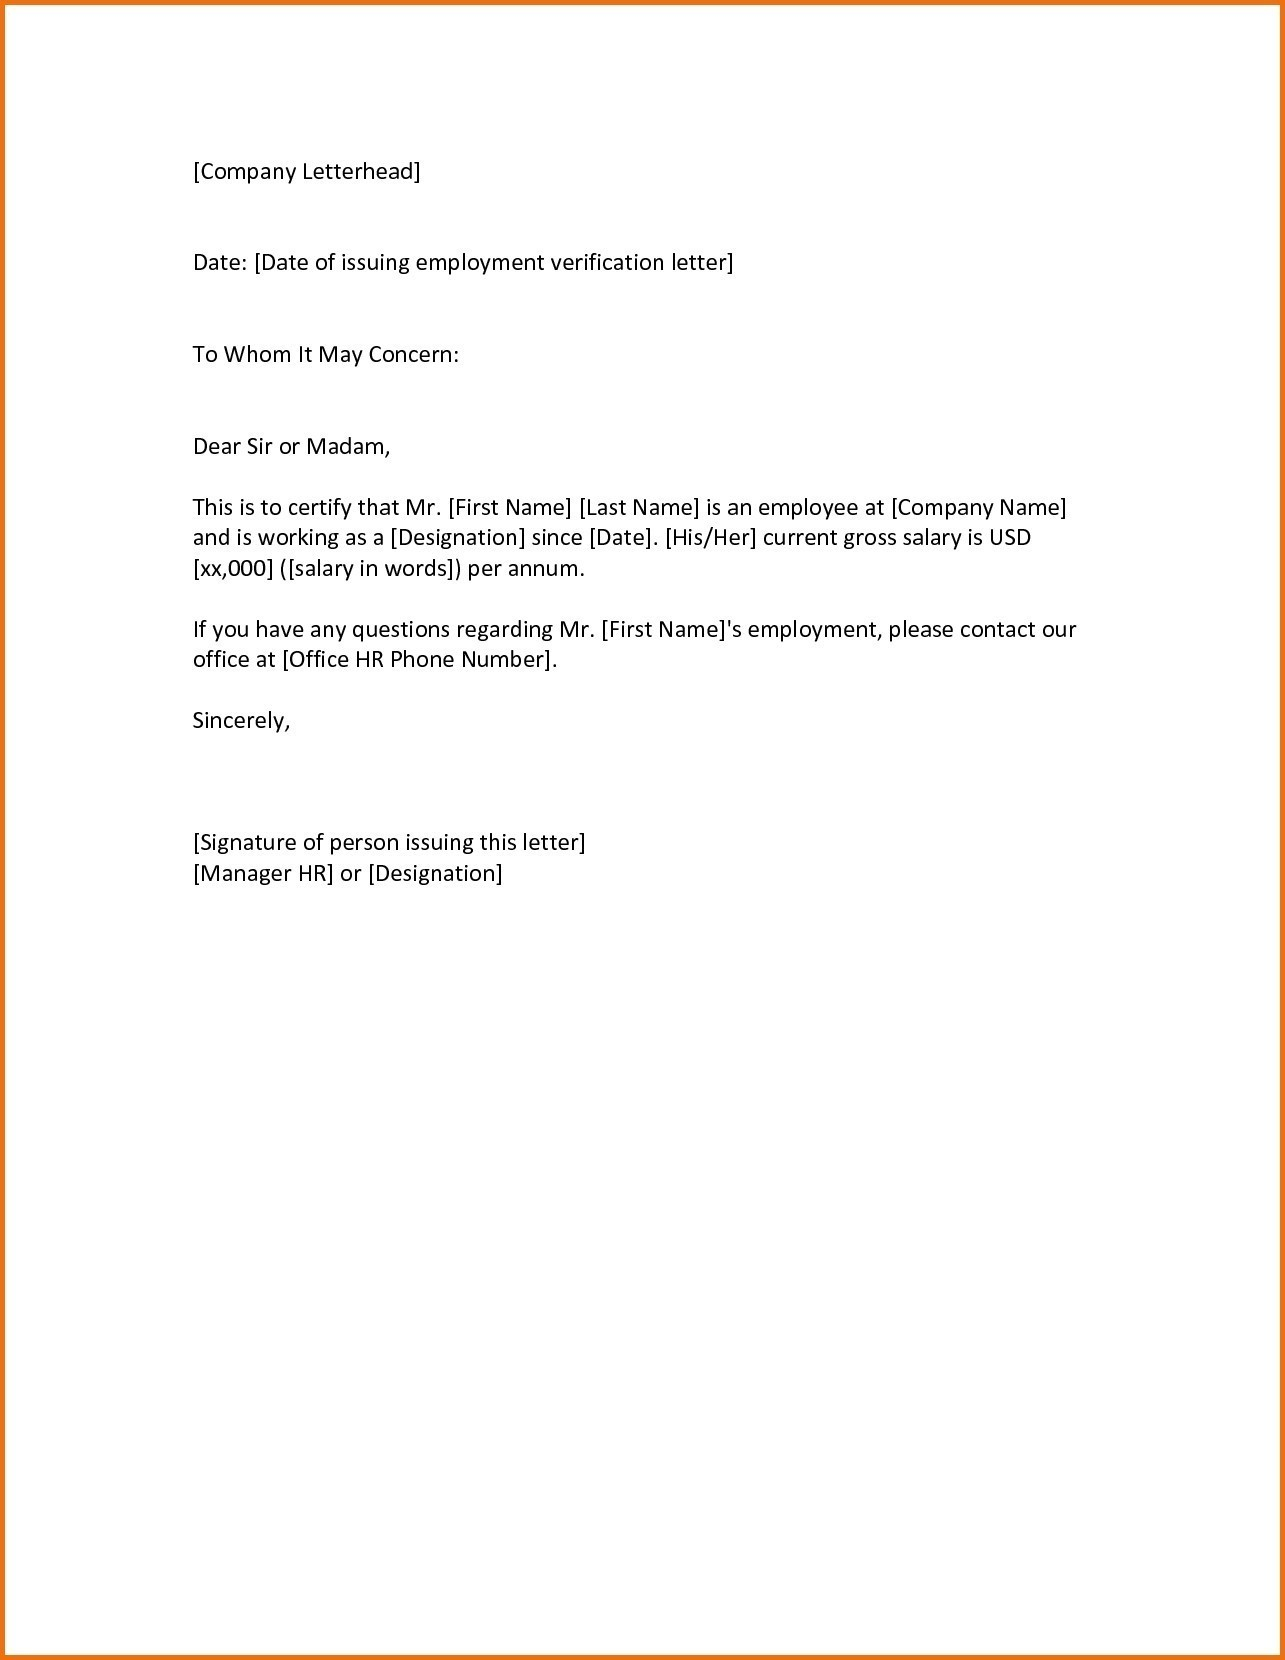 Employment Verification Letter to whom It May Concern Template - Request Letter format to whom It May Concern Fresh Pany Letter